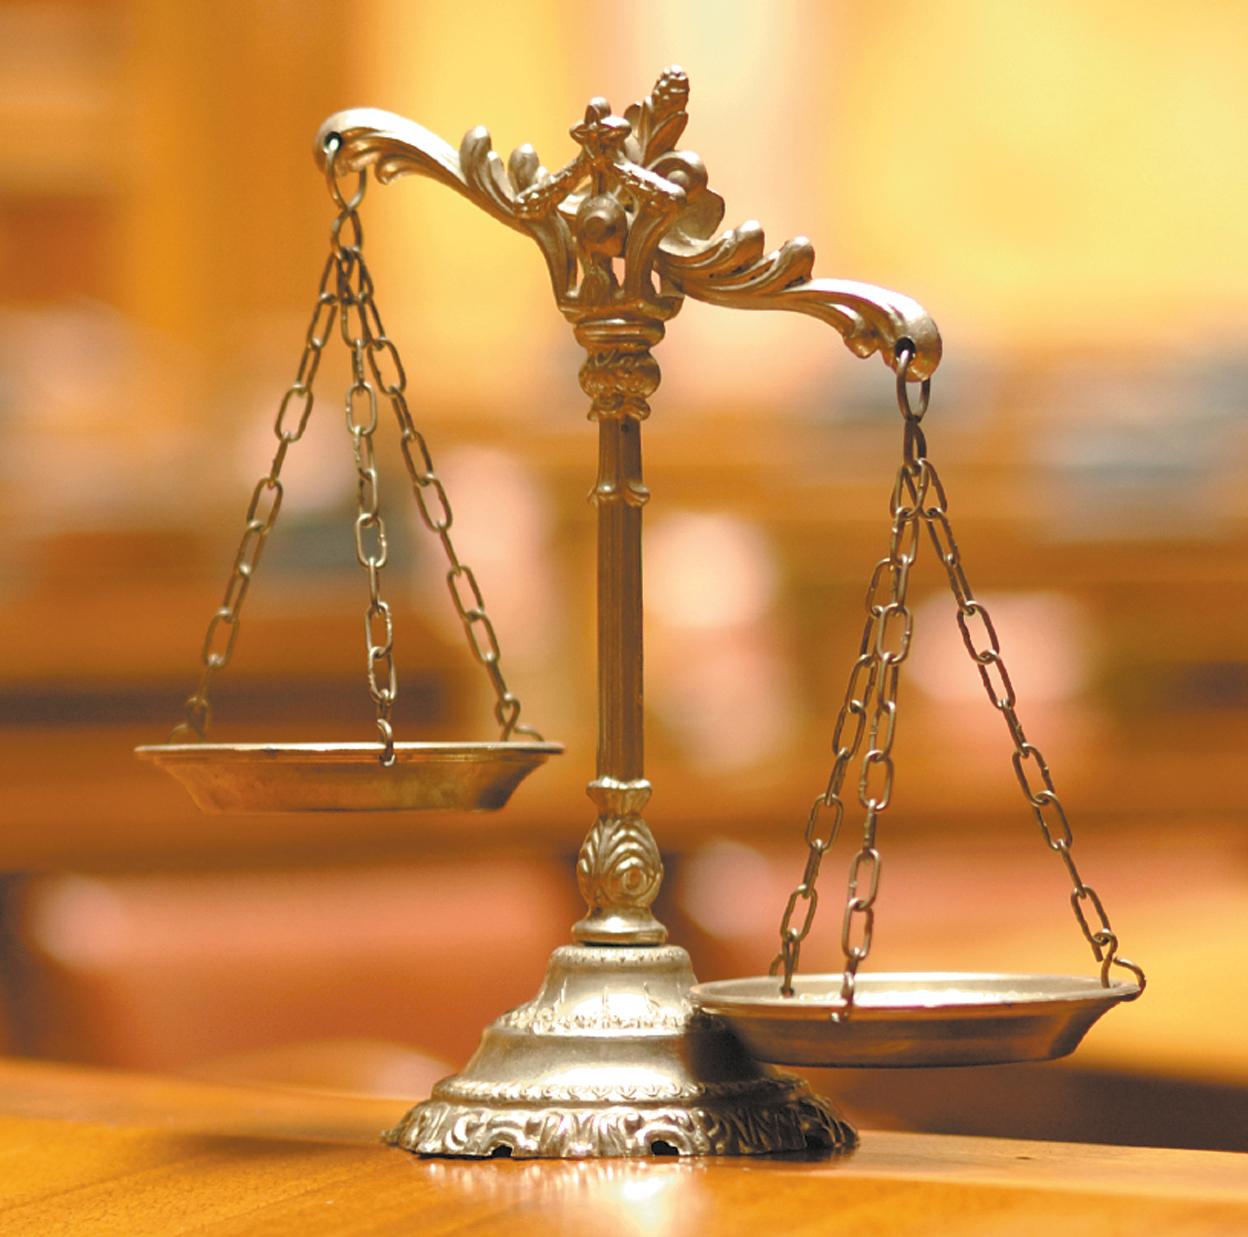 Balance Justice balance-of-justice-041717 | new orleans' multicultural news source